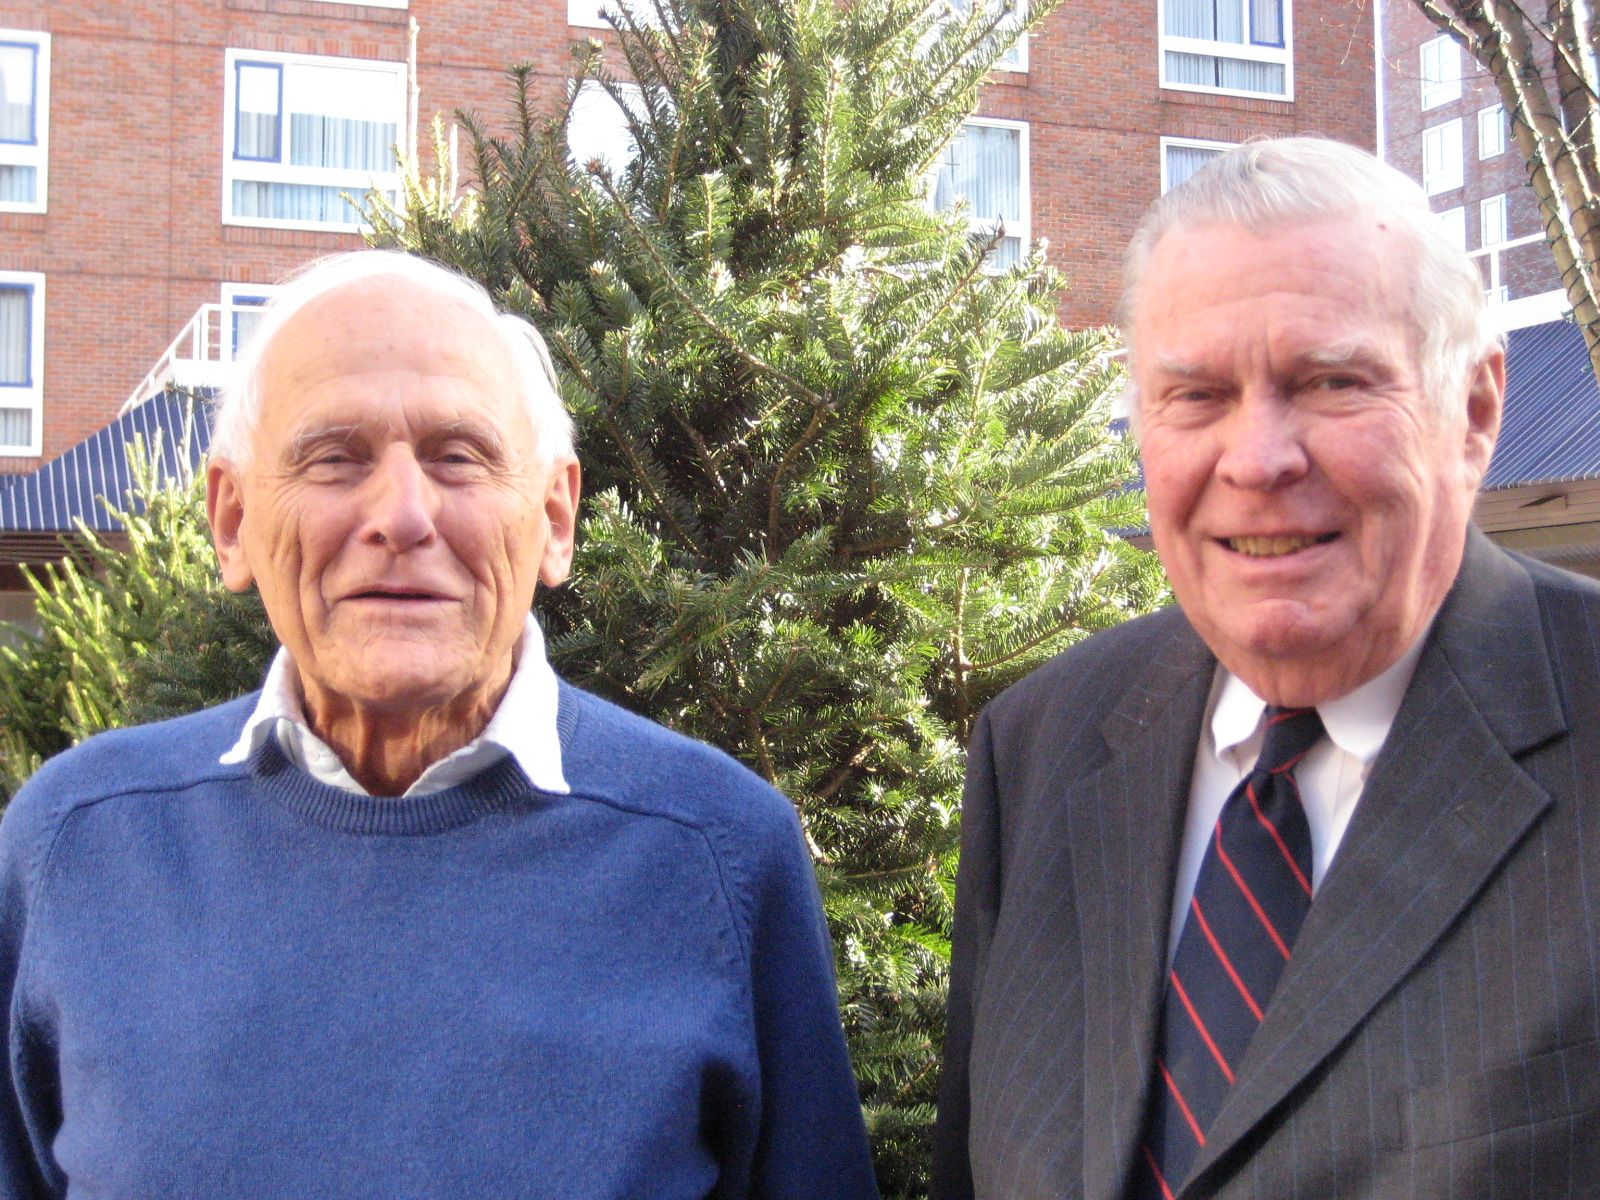 Hugh Clarke '46 (left) travelled from his home in Surrey, England to meet Jack Sullivan '46 (right) for lunch in Cambridge on November 20th.